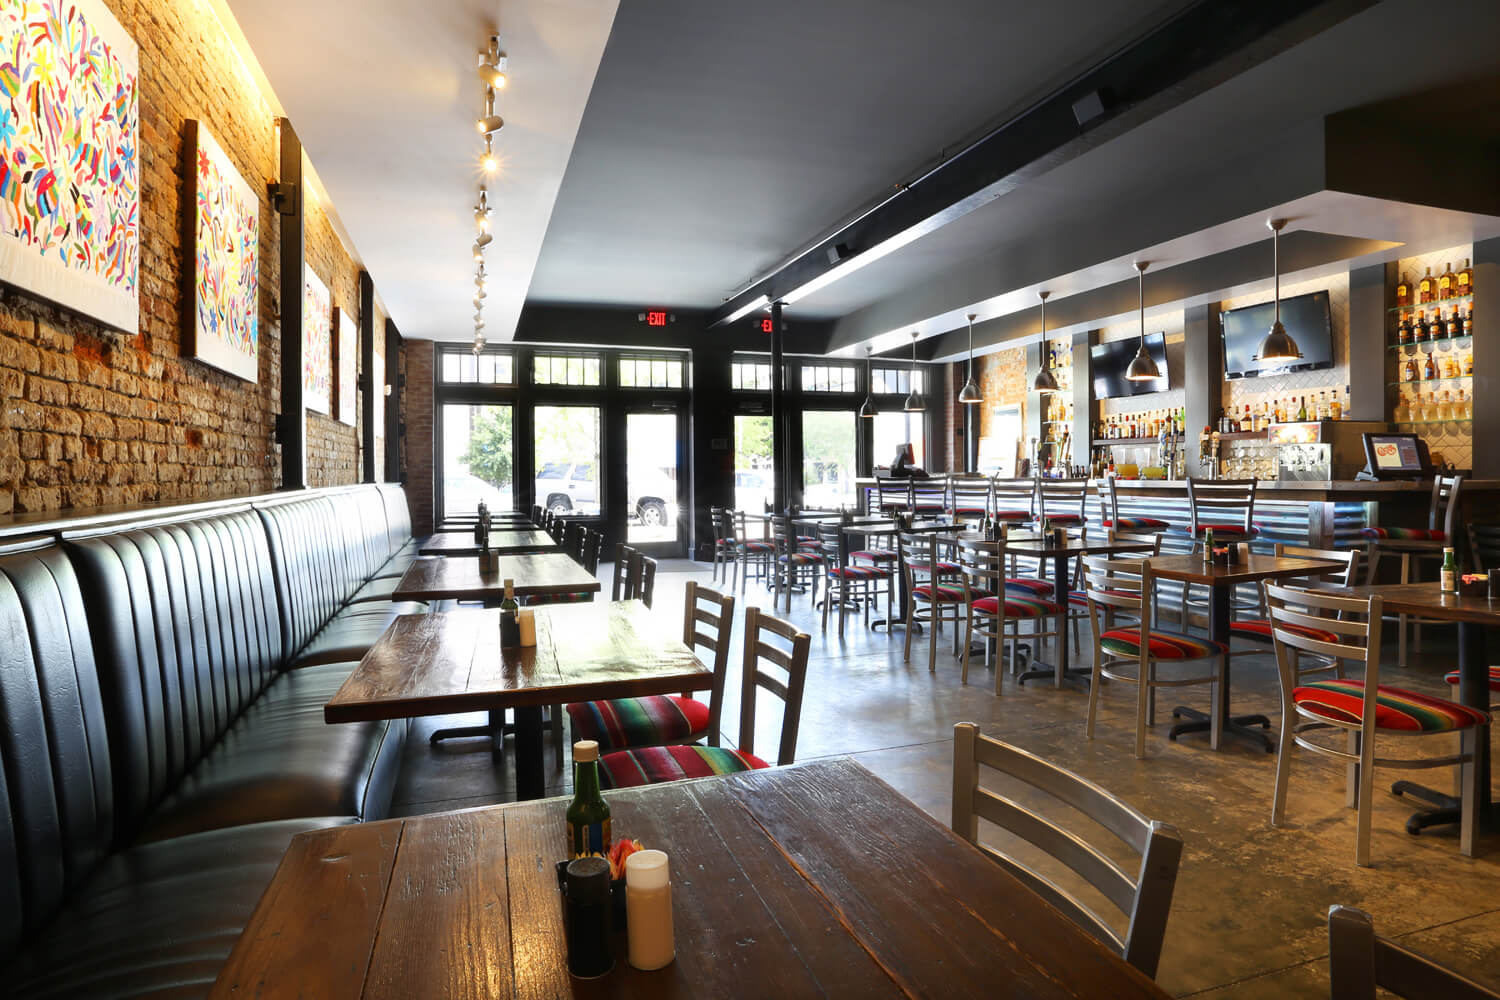 Cuco's Mexican Café Restaurant Designed by Foshee Architecture – View of Interior